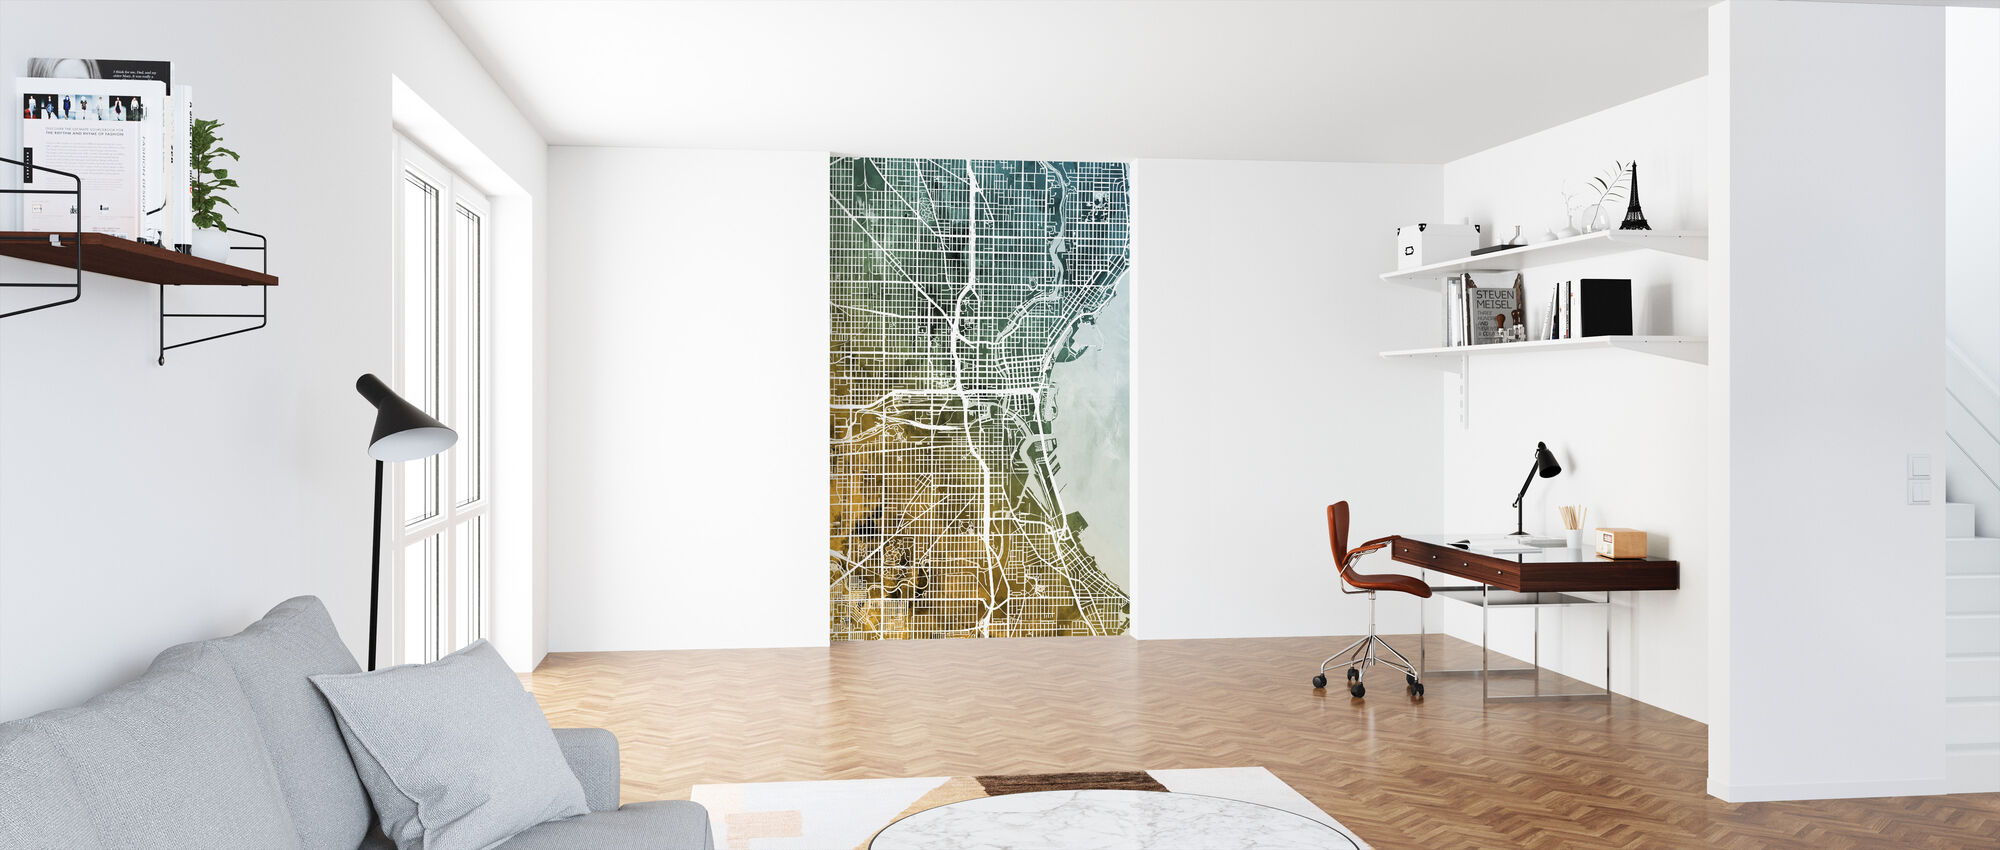 Milwaukee Wisconsin City Map - Wallpaper - Office